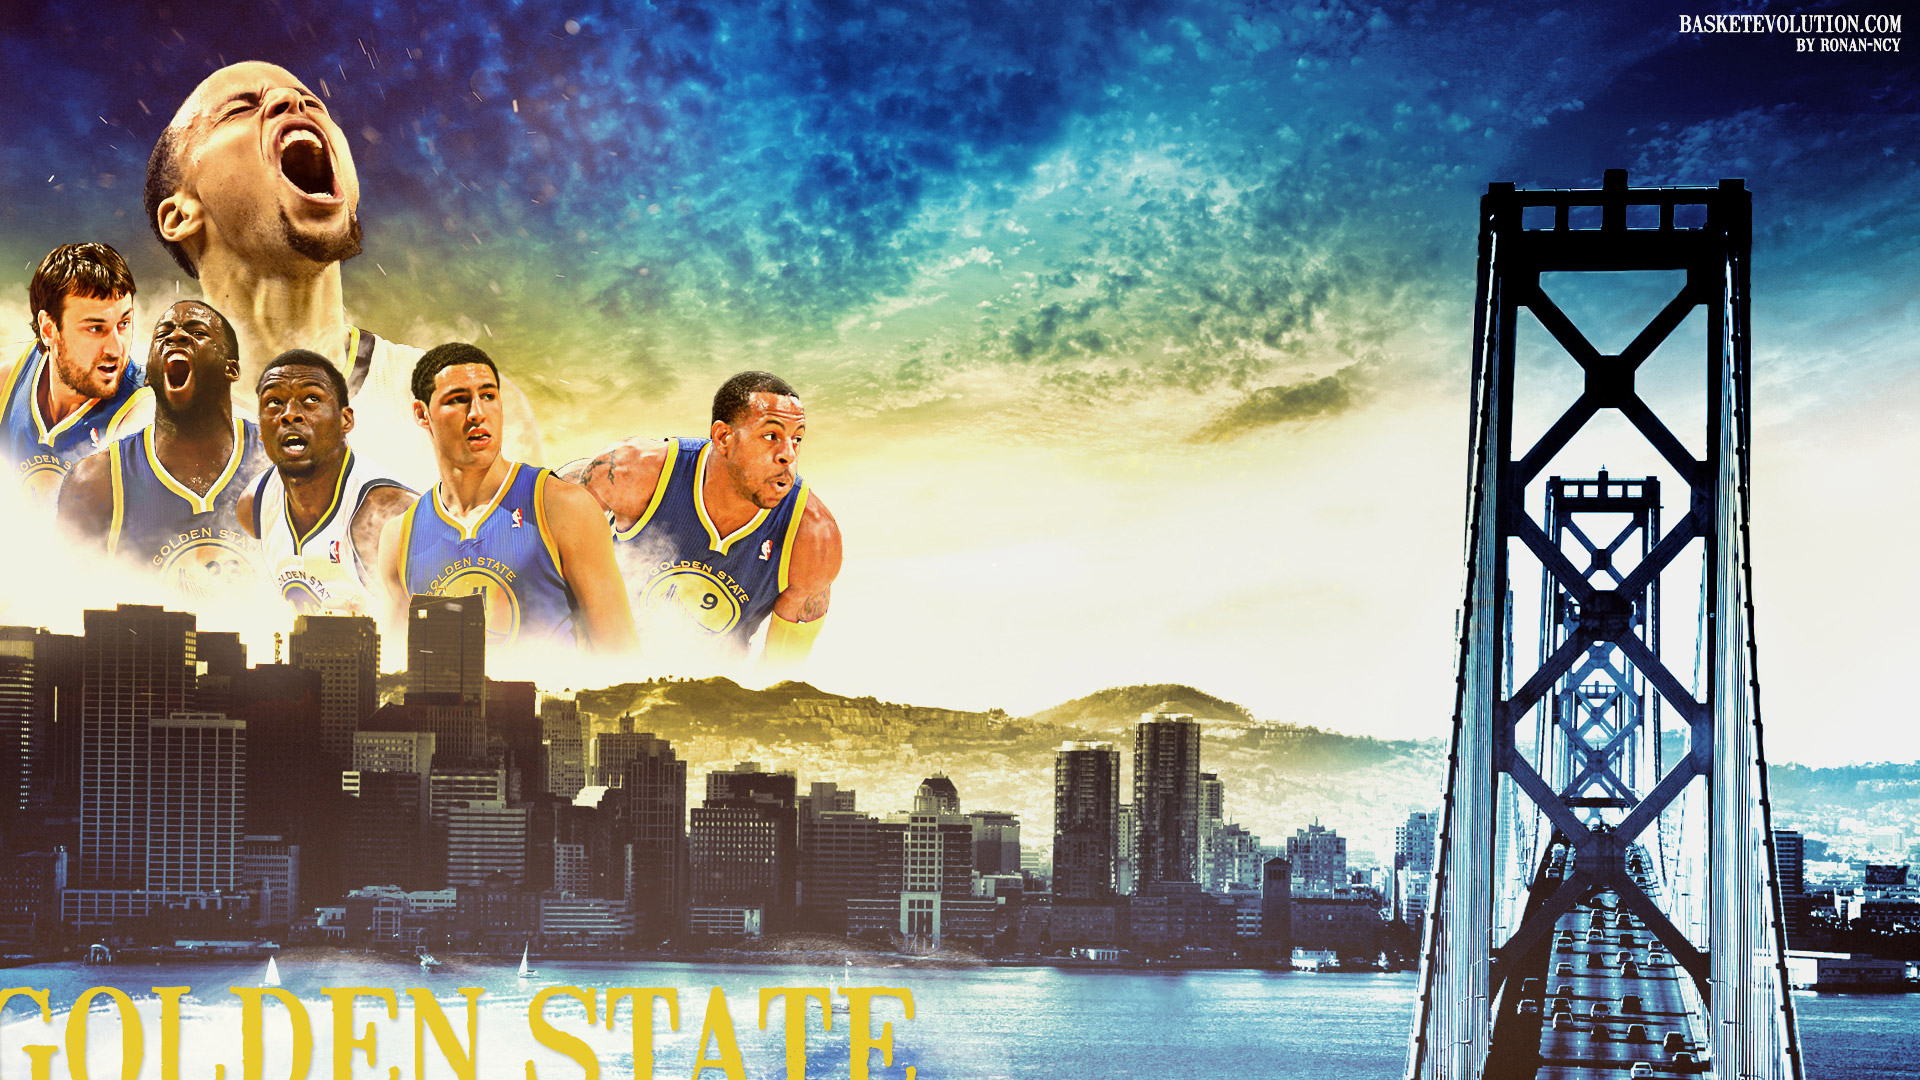 Golden State Warriors 2014 2015 Wallpaper   Basketball Wallpapers 1920x1080